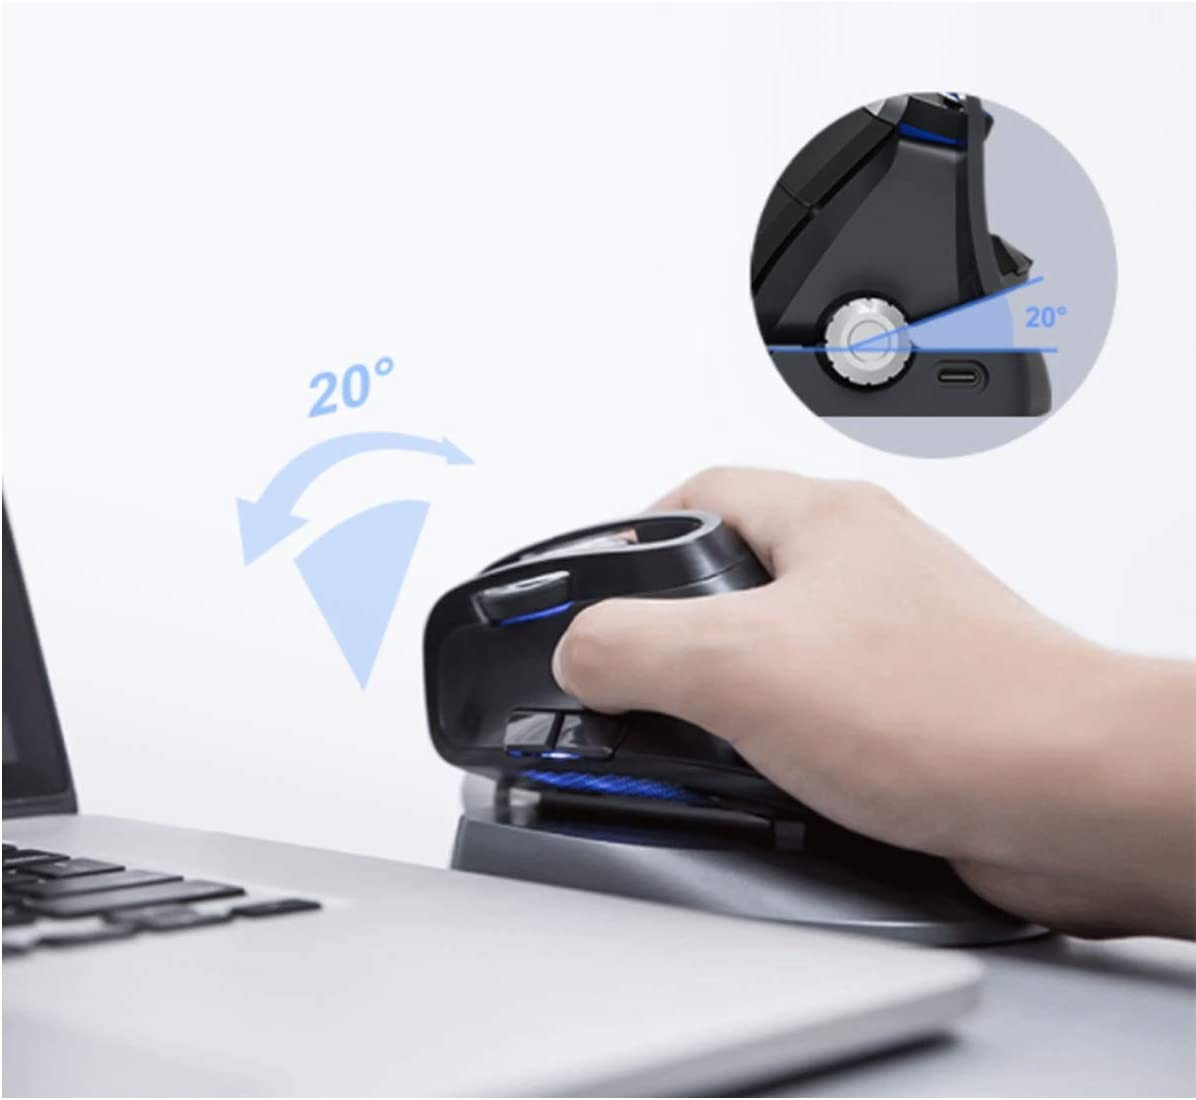 Wireless Mouse Color : Black CQIANG Mouse Gaming mice PCs Ergonomic Vertical Three-Mode Rechargeable Vertical Mouse Suitable for laptops Macs Office Laptop